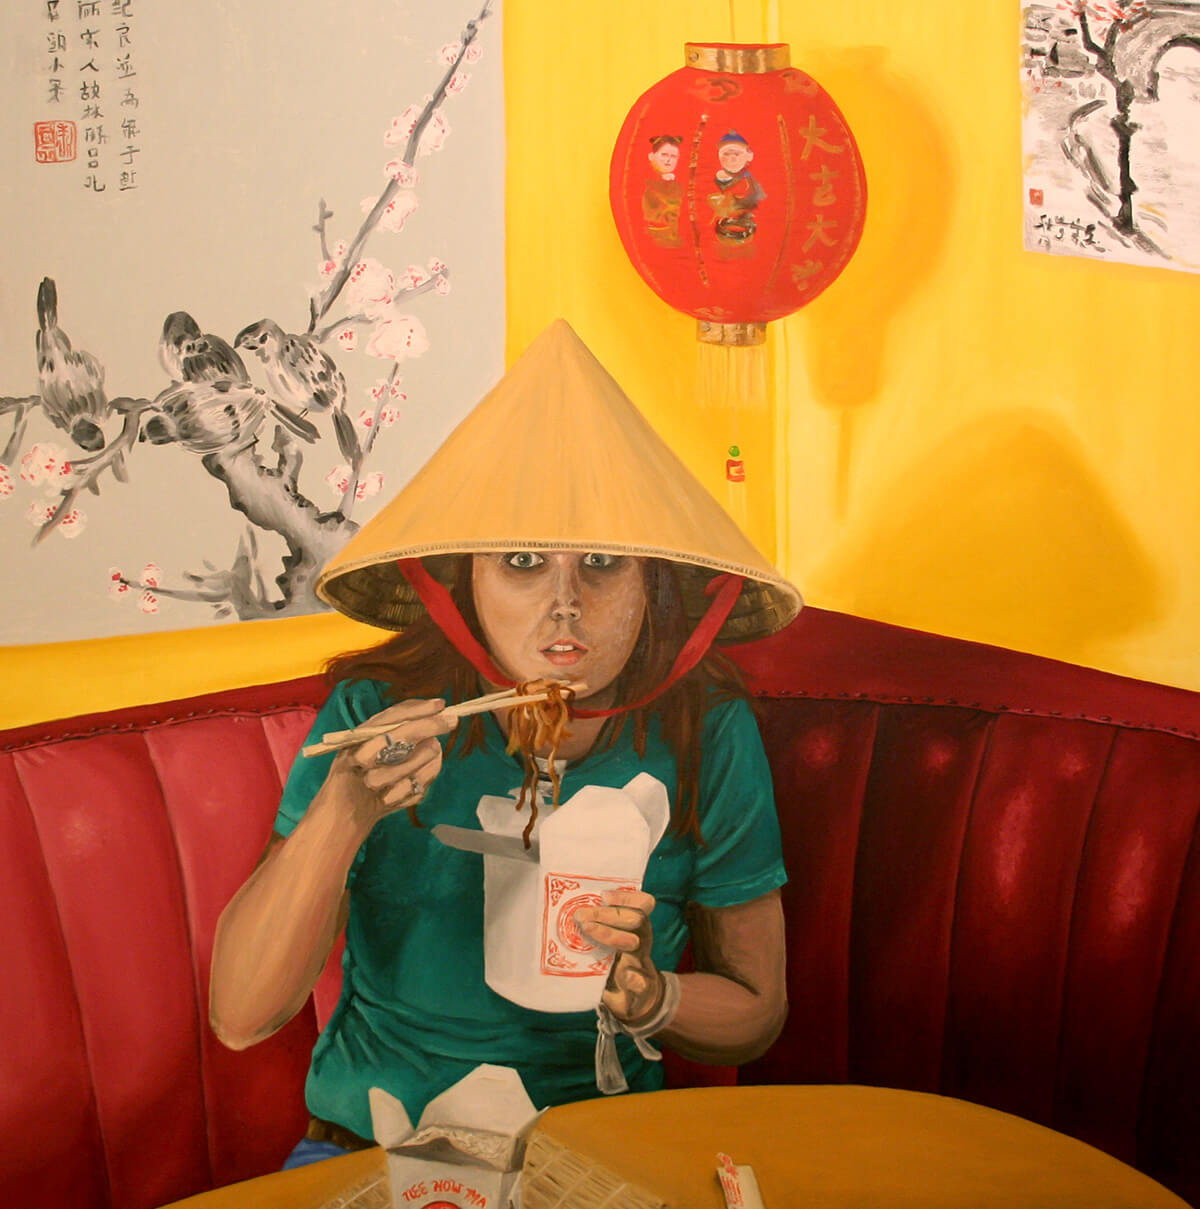 a painting of my friend Kirsten wearing a Chinese bamboo hat and eating takeout noodles